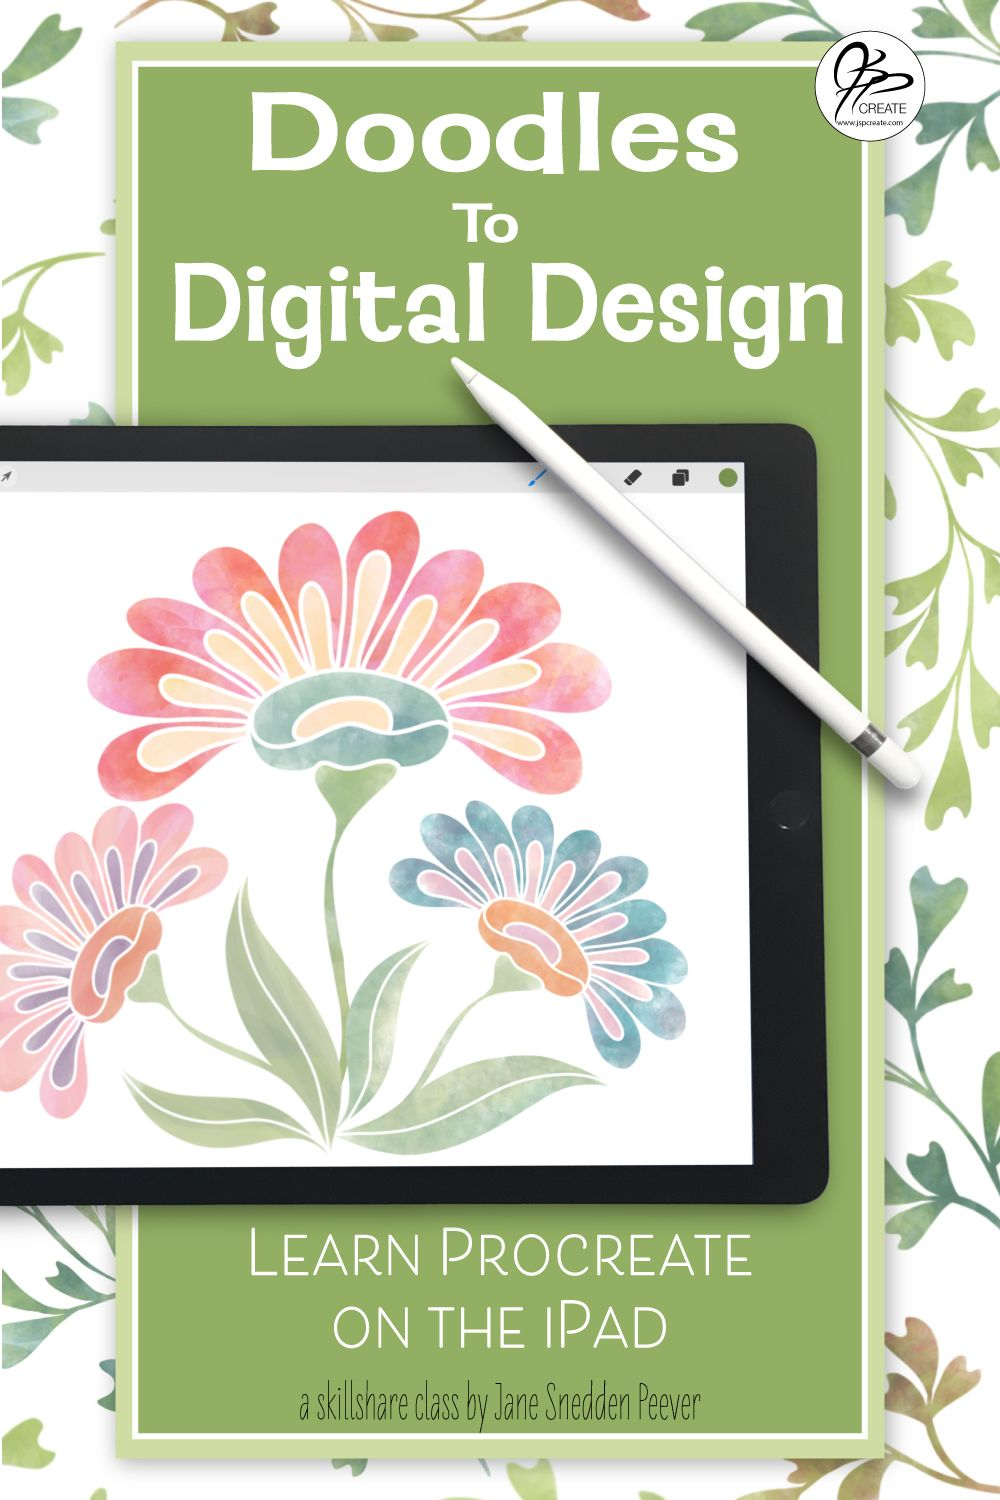 Learn Procreate on the iPad Doodles to Digital Design